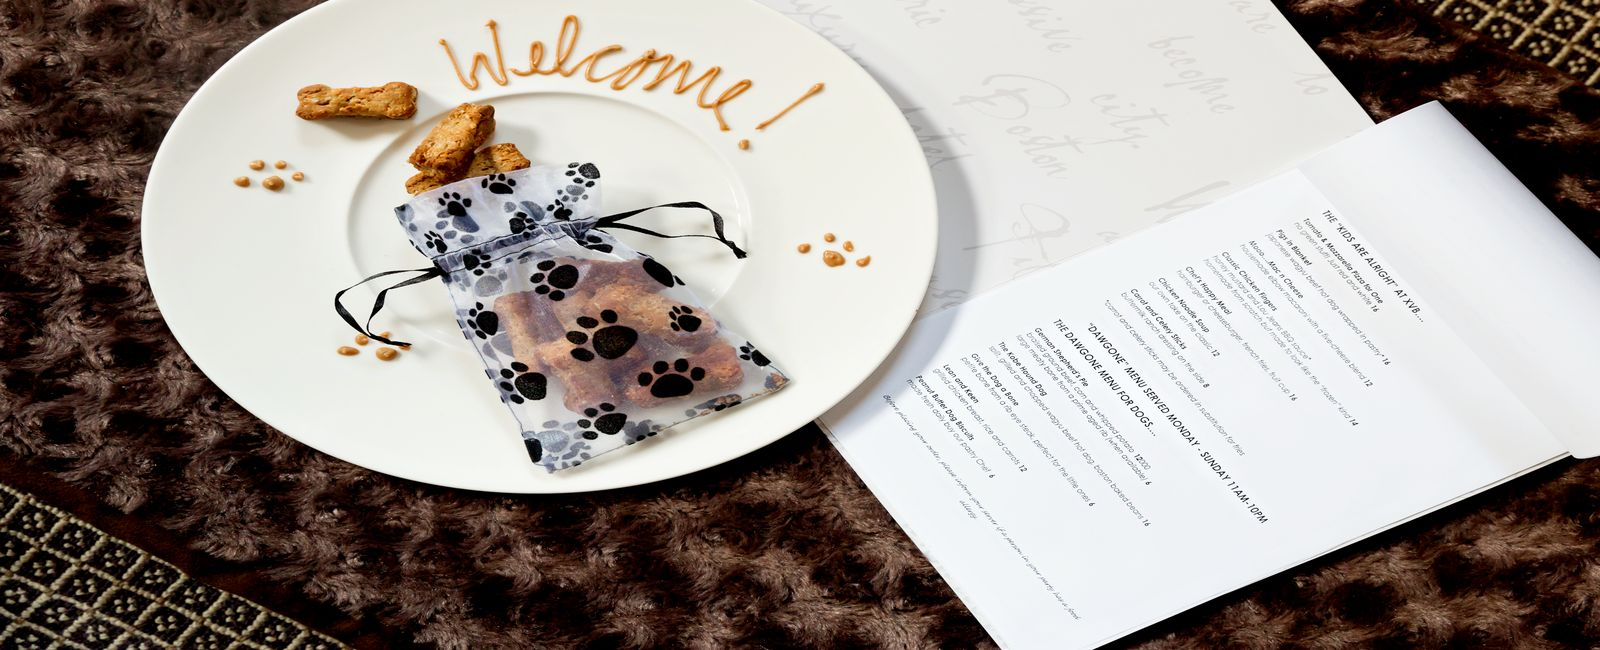 Sample of our dog welcome amenity featuring a secret peanut butter recipe that is human friendly and dog approved.